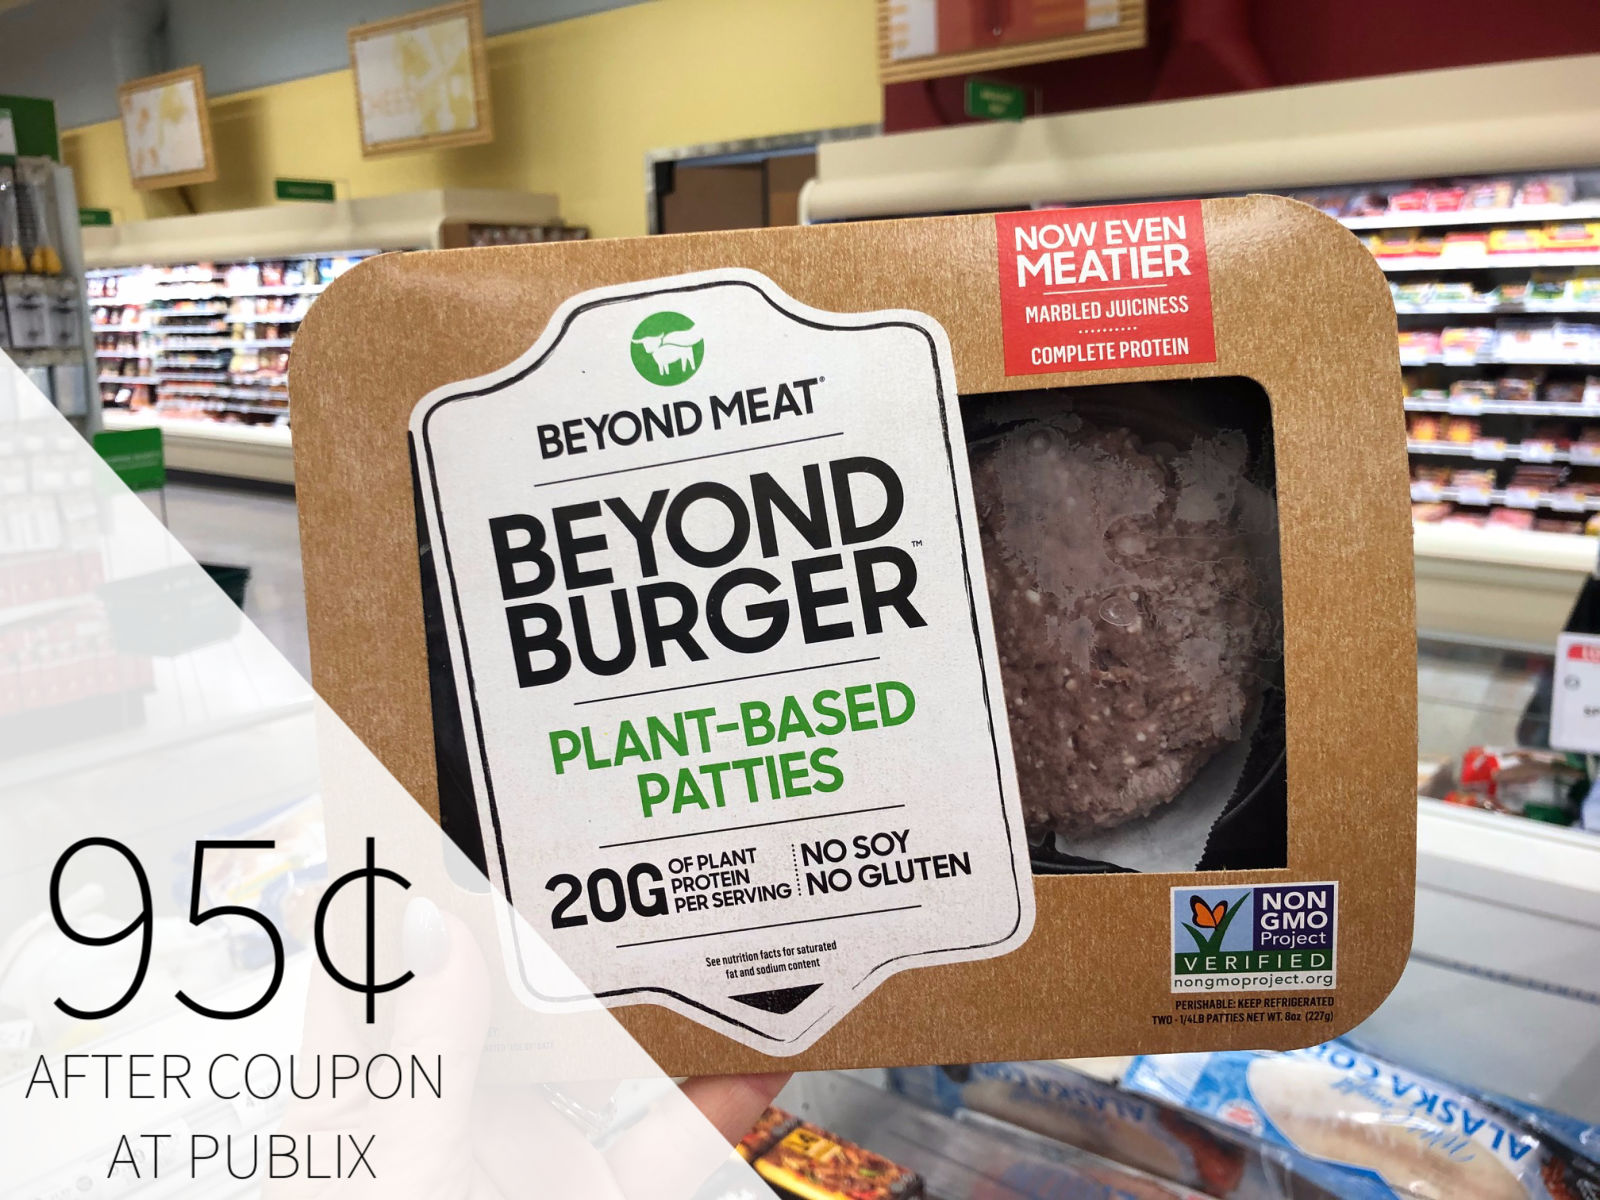 Beyond Meat The Beyond Burger Just $1.95 At Publix on I Heart Publix 3